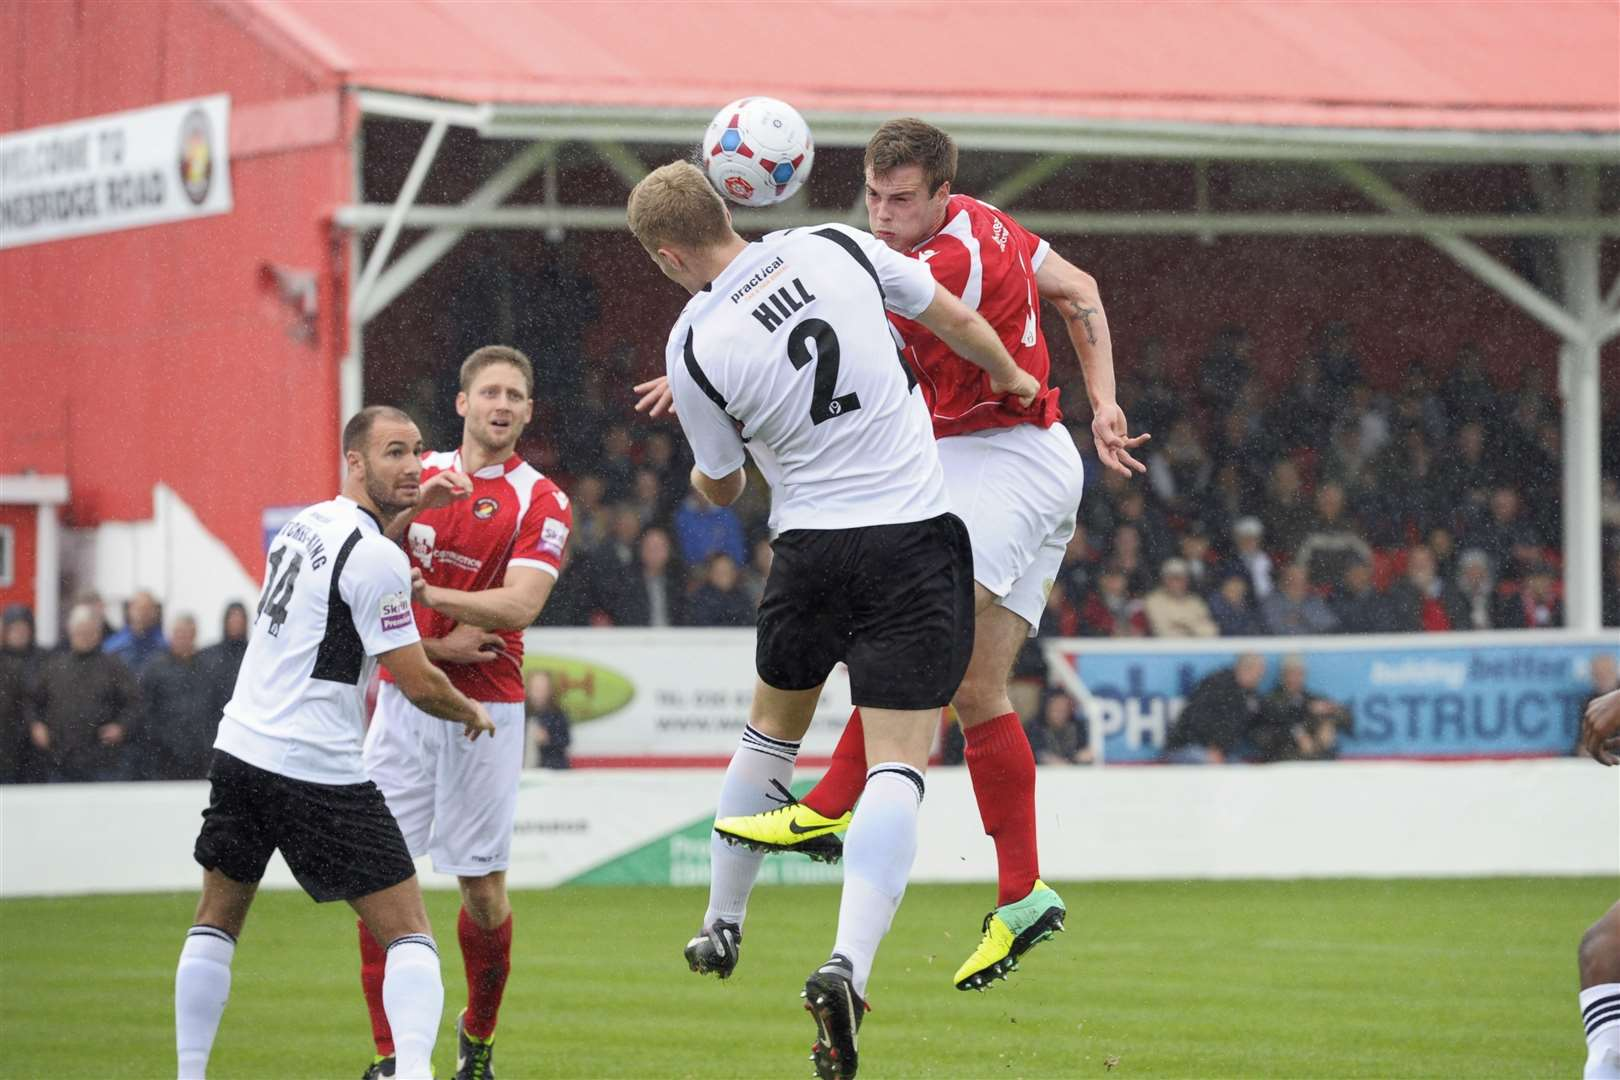 Josh Hill playing against Ebbsfleet during his first spell at Dartford Picture: Andy Payton